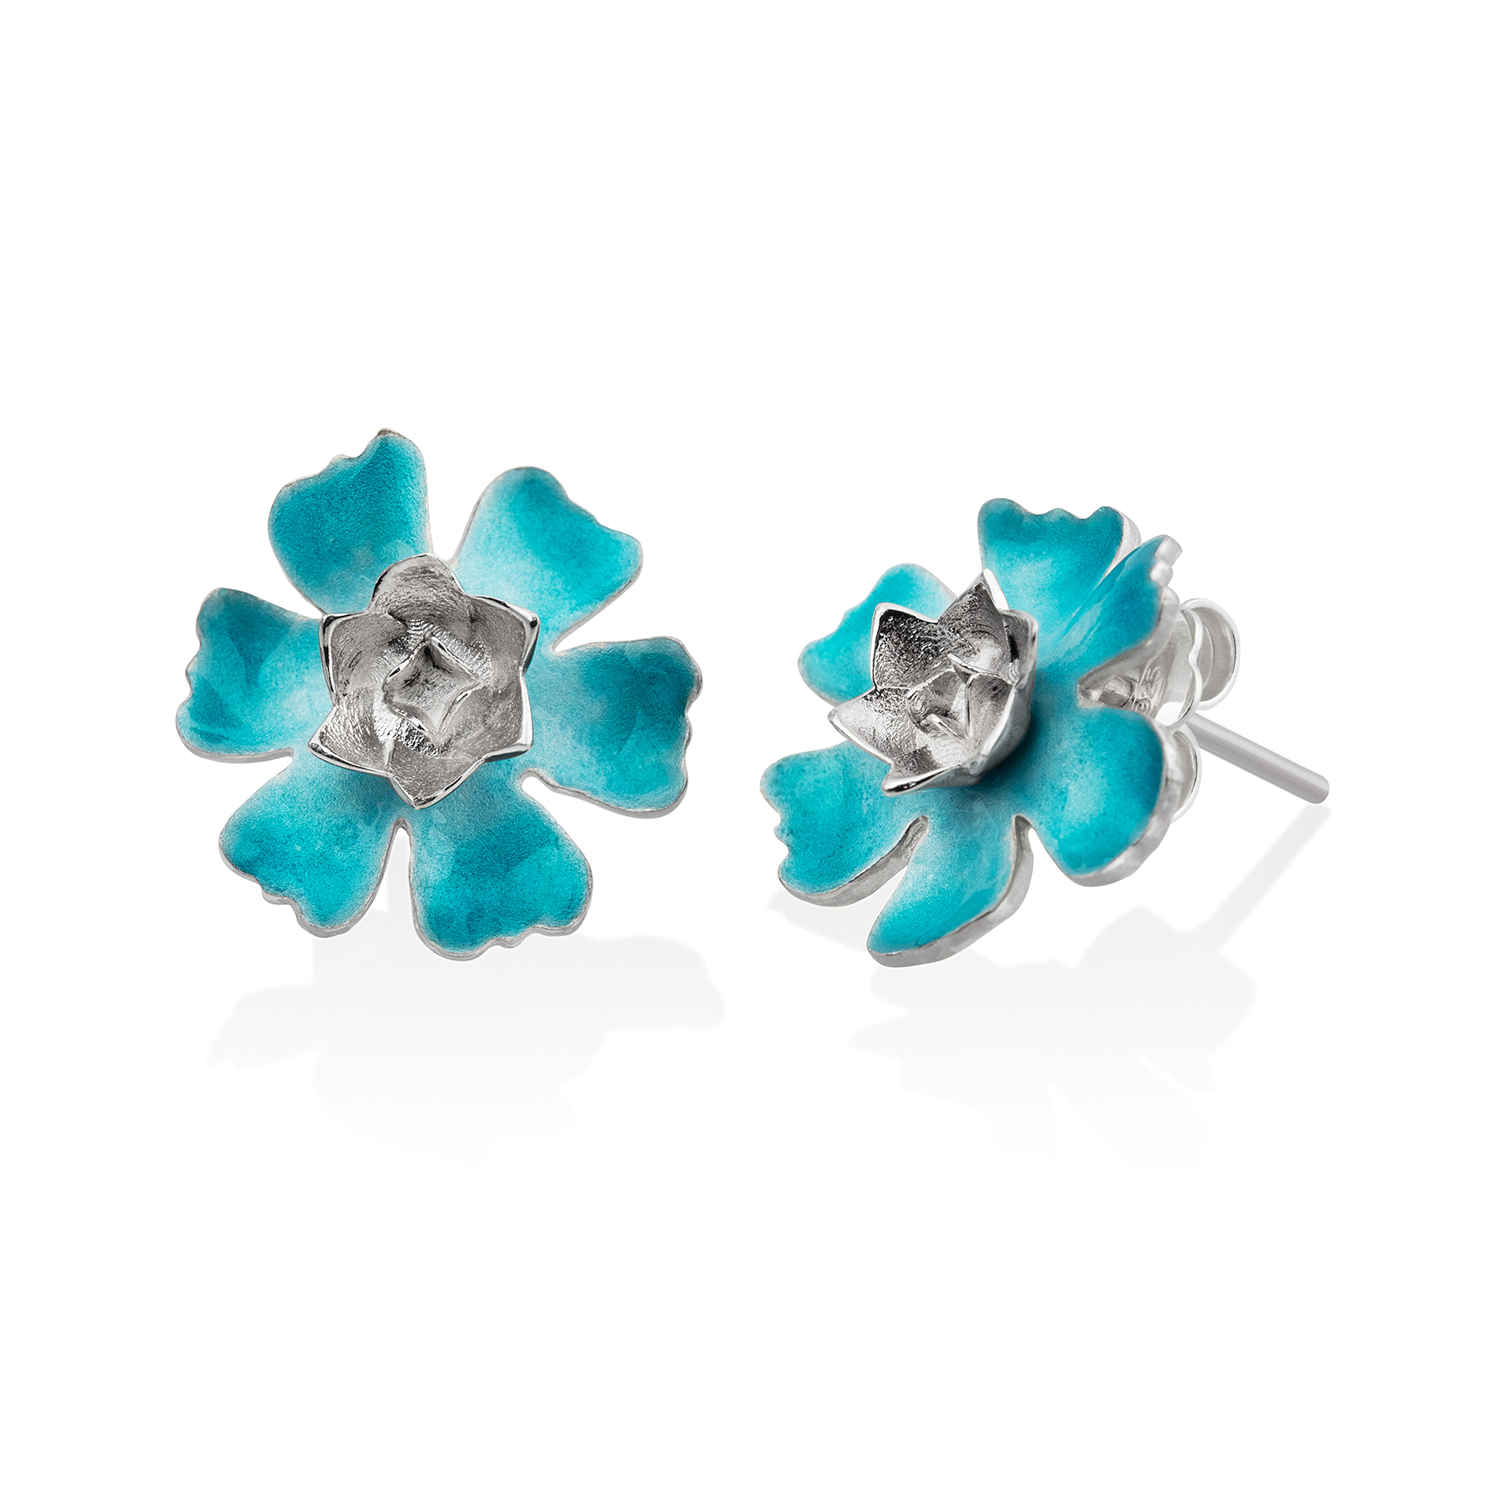 Turquoise Magnolia earrings